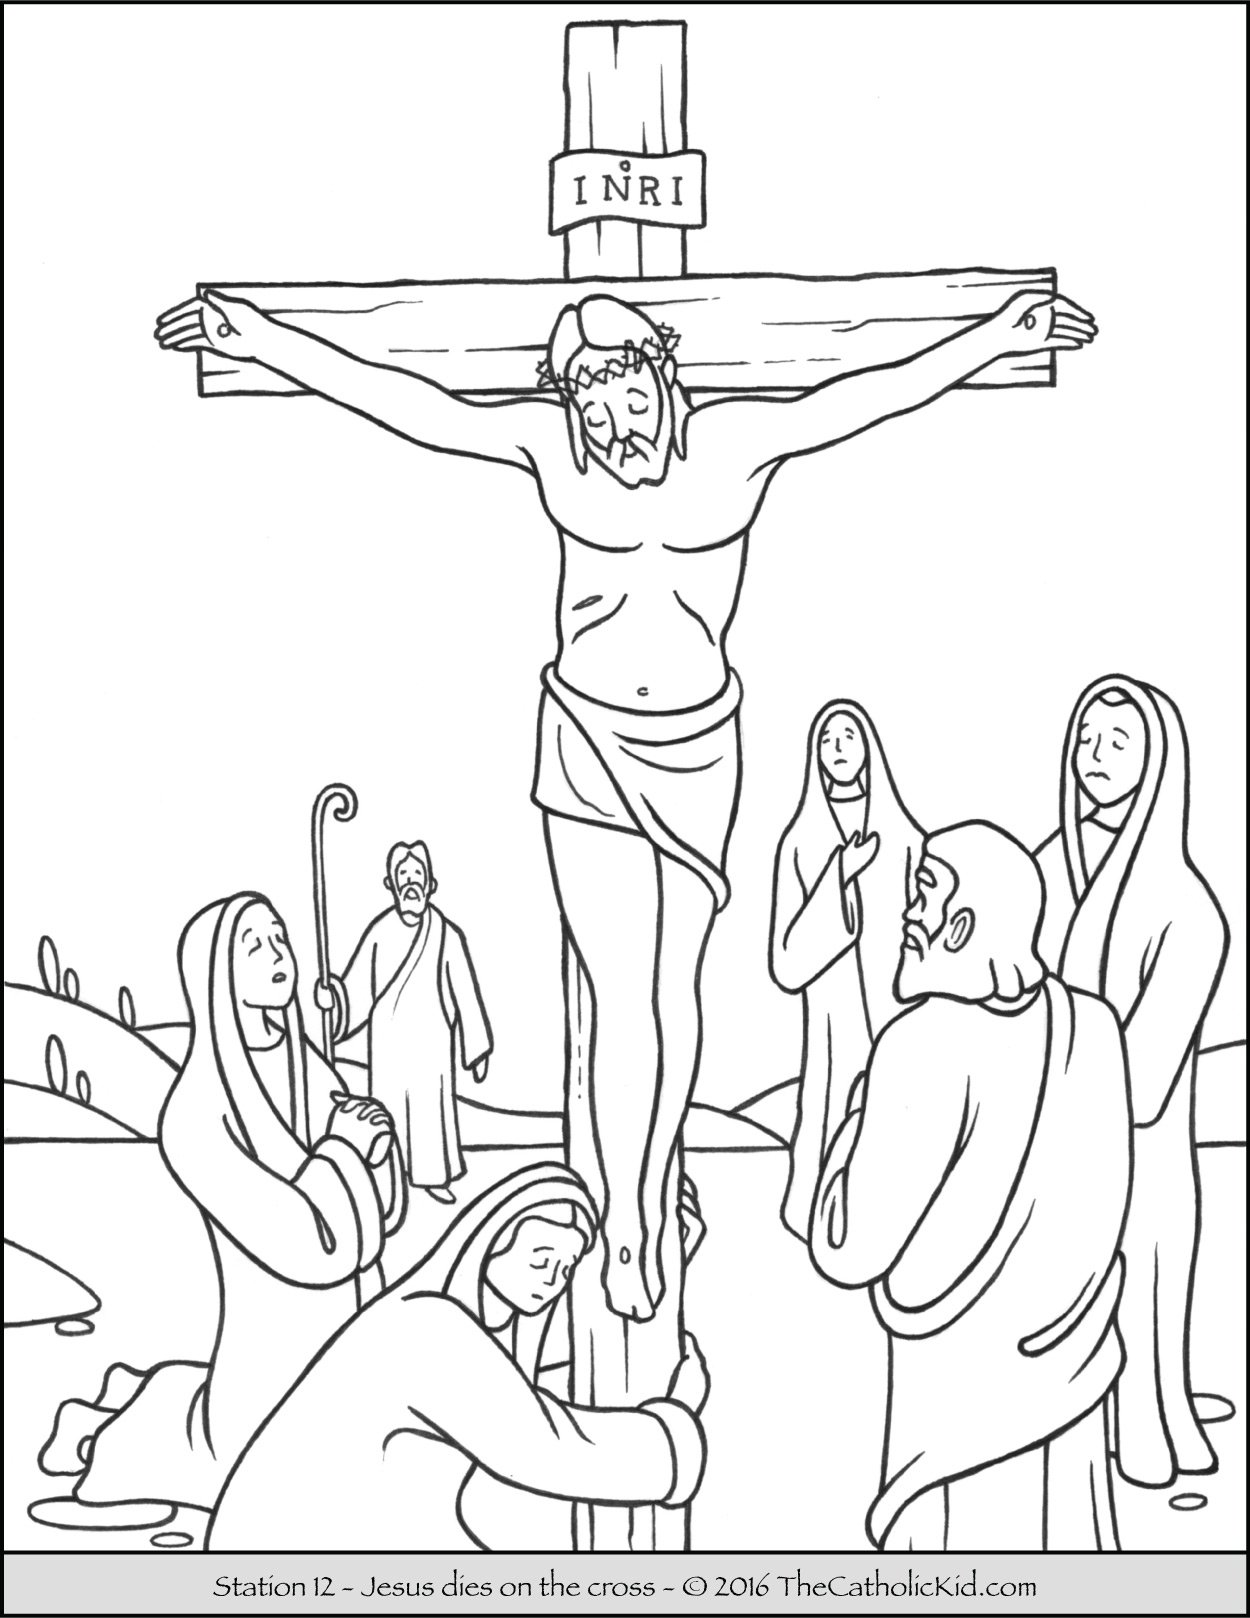 Stations of the cross coloring pages the catholic kid for Coloring pages of cross